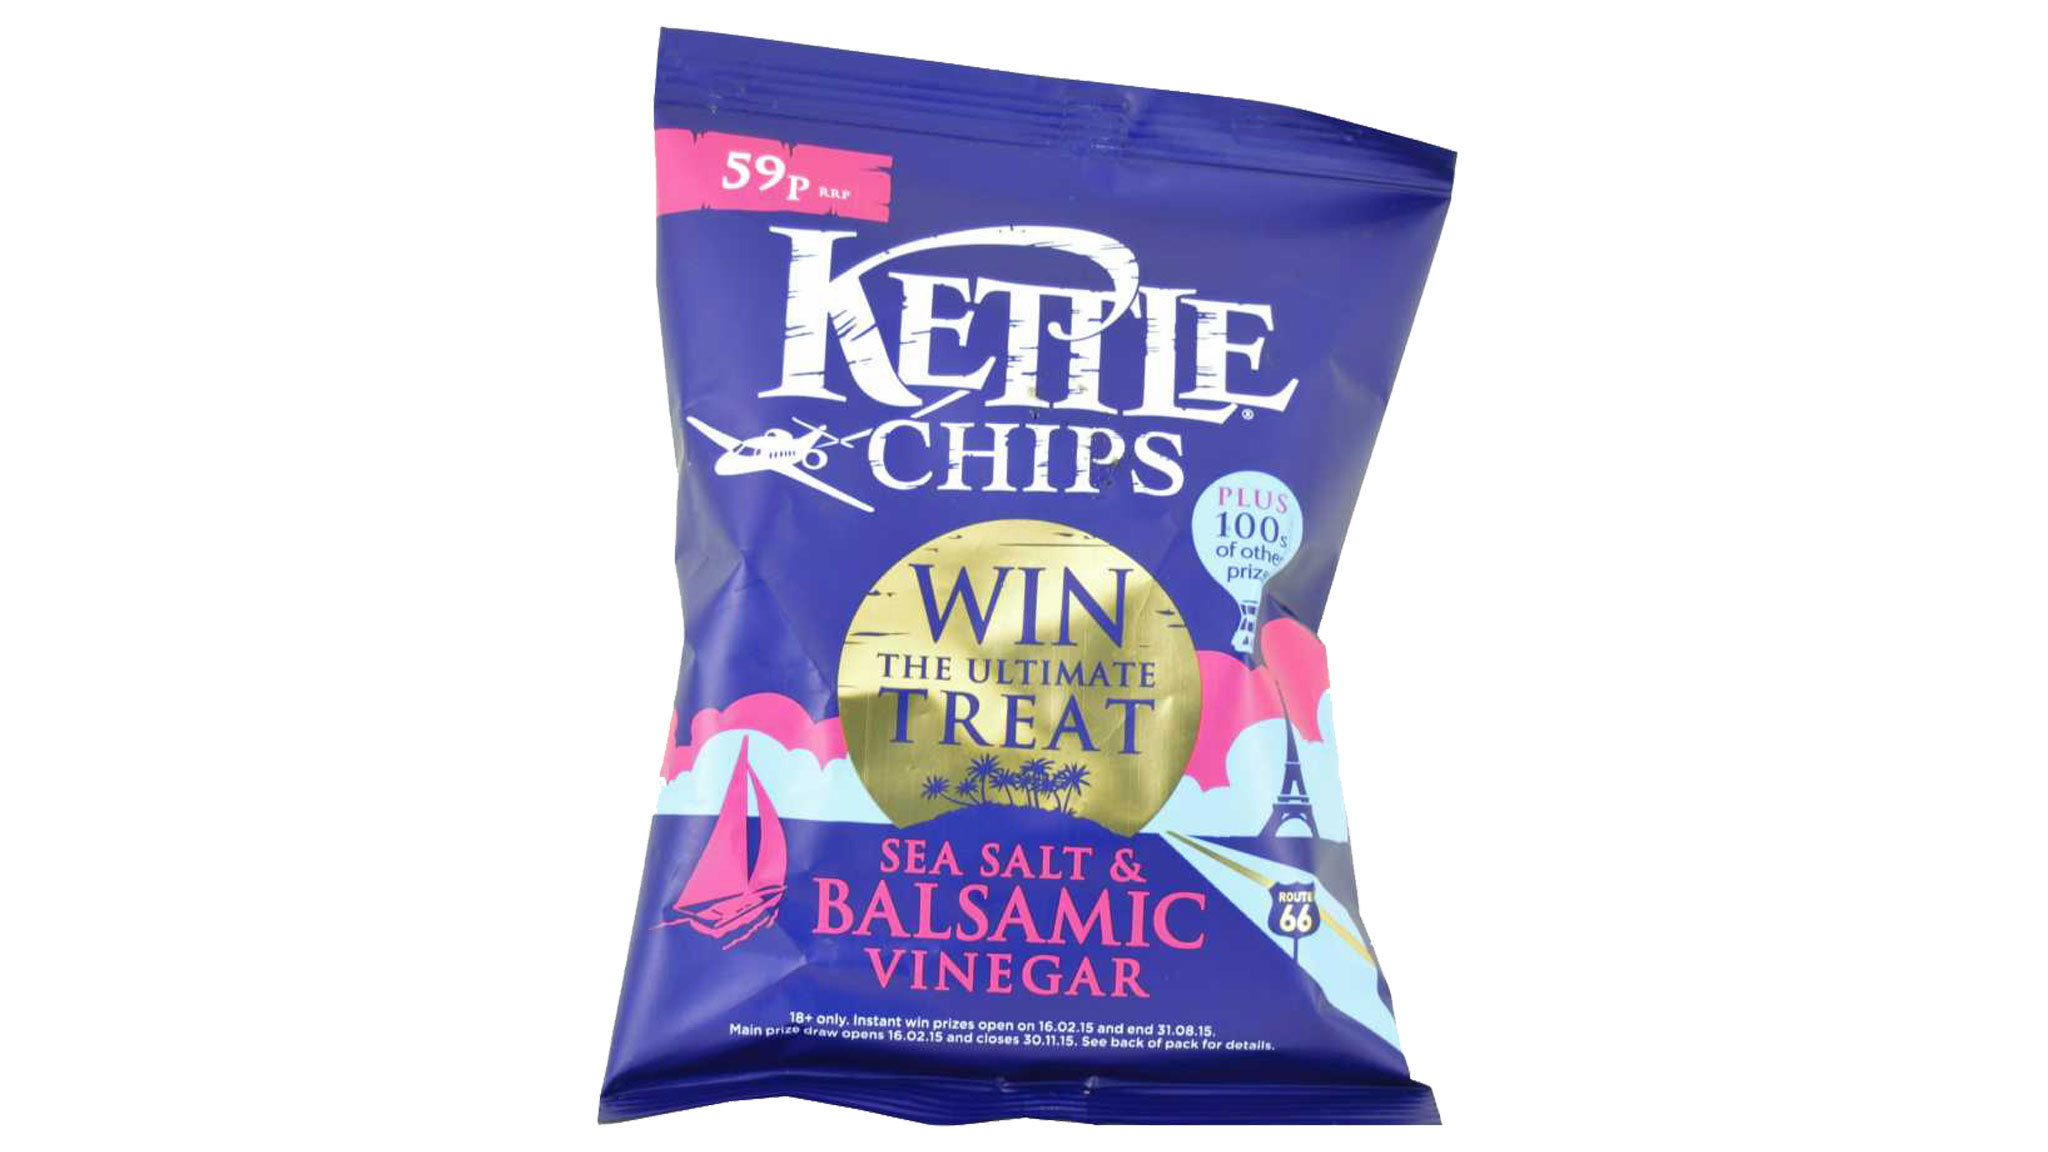 Sea Salt & Balsamic Vinegar Kettle Chips